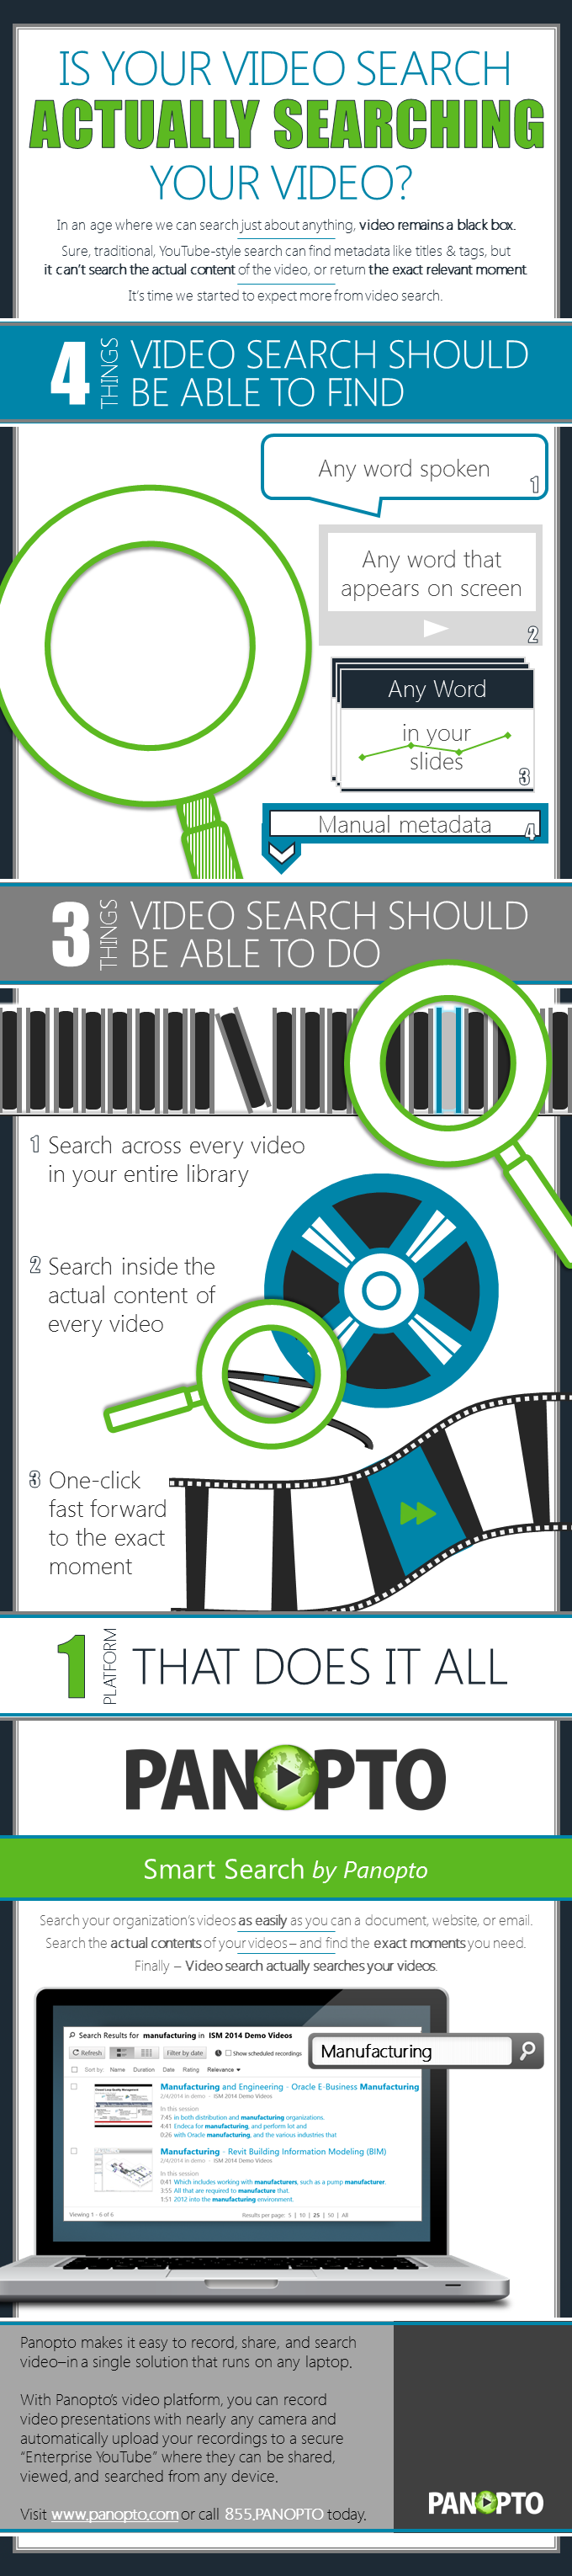 Inside Video Search Infographic - Panopto Video CMS